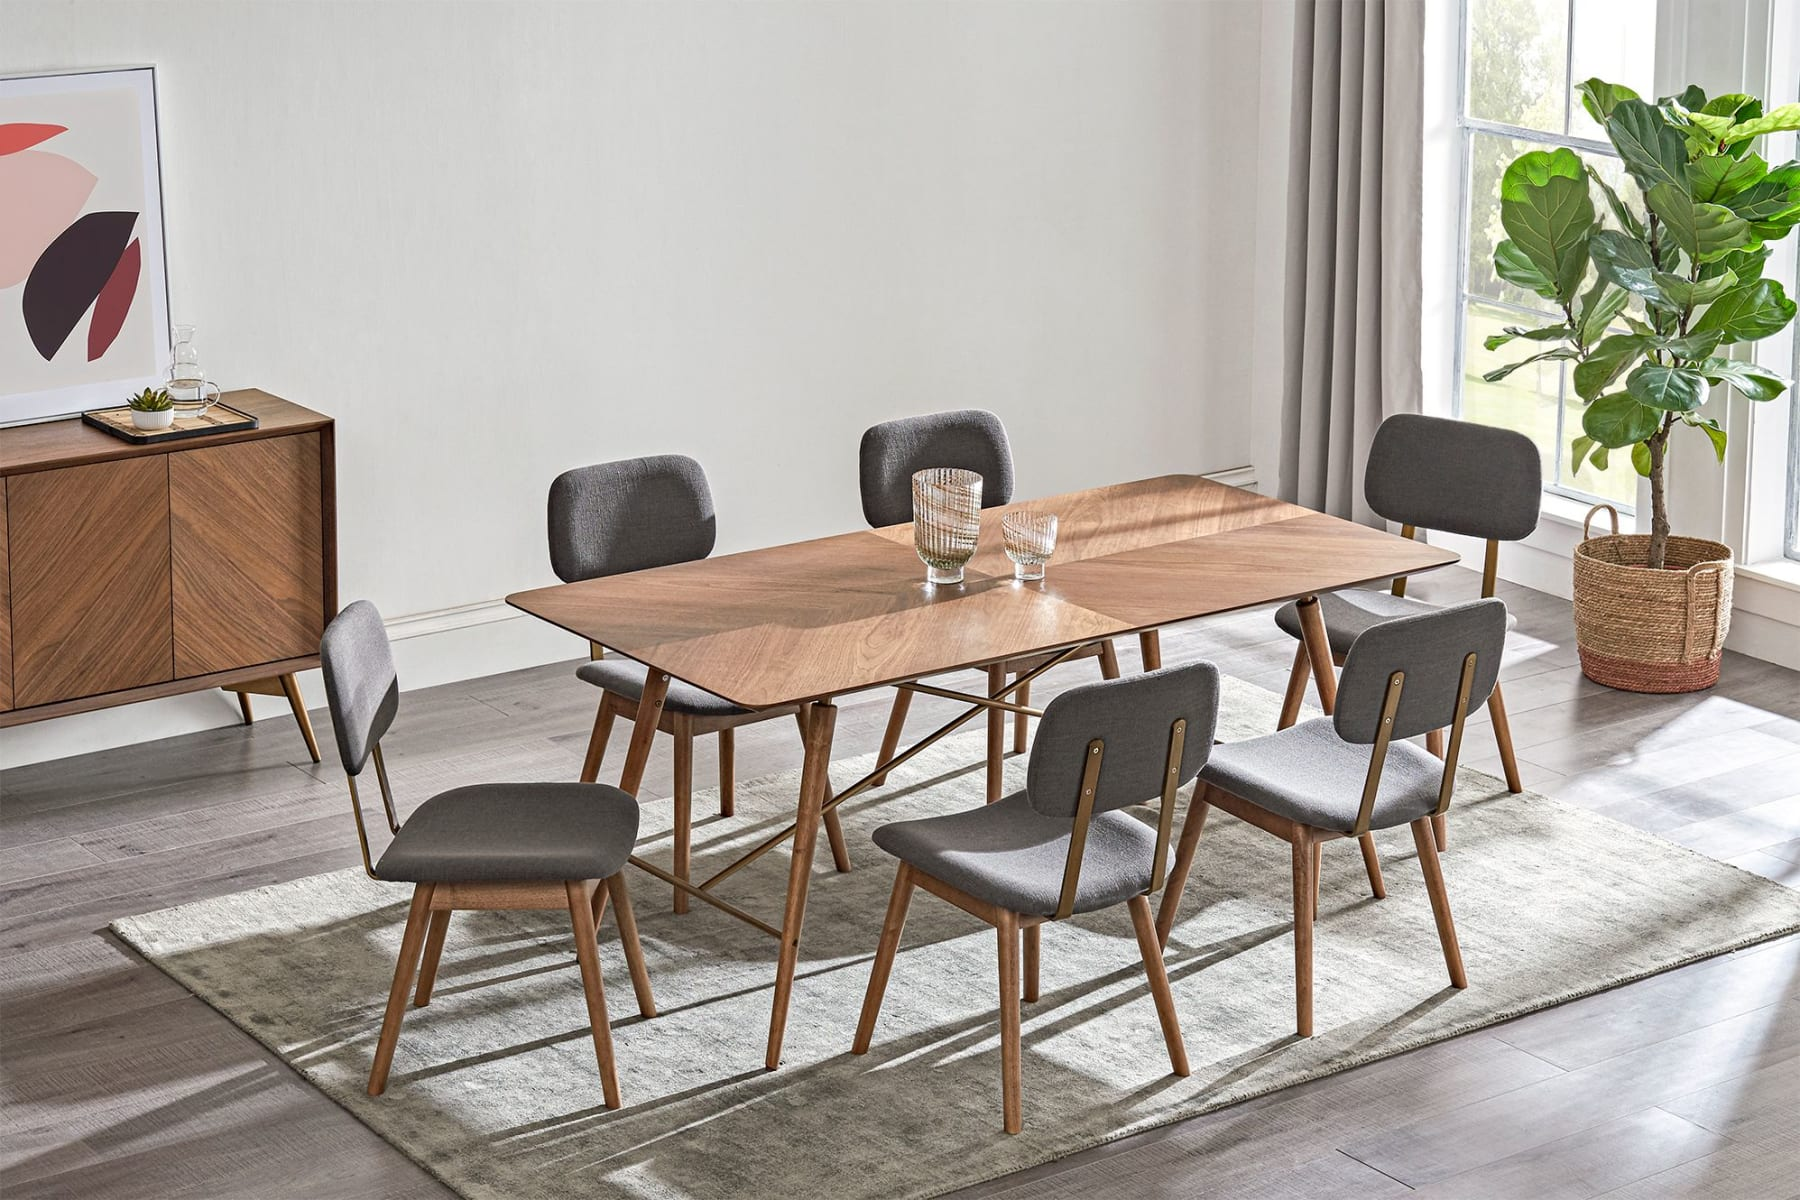 Dining table, chairs and sideboard with contemporary art in dining room